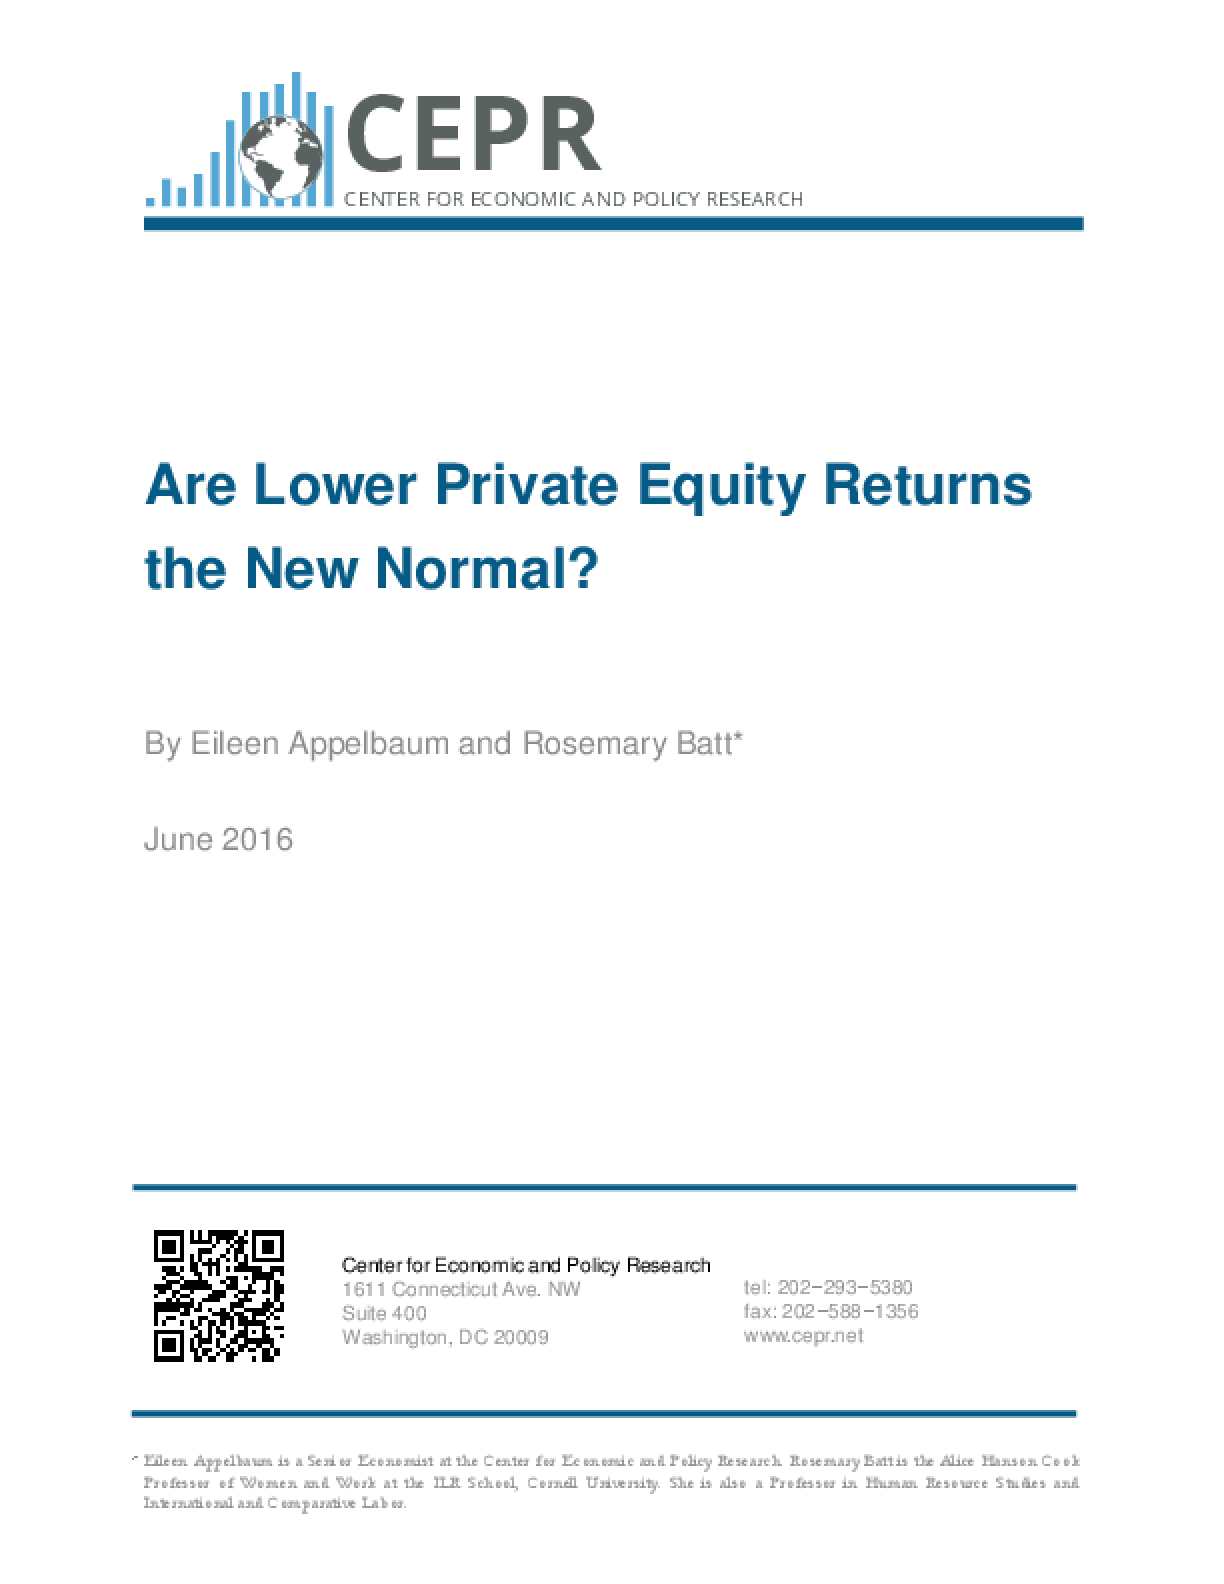 Are Lower Private Equity Returns the New Normal?